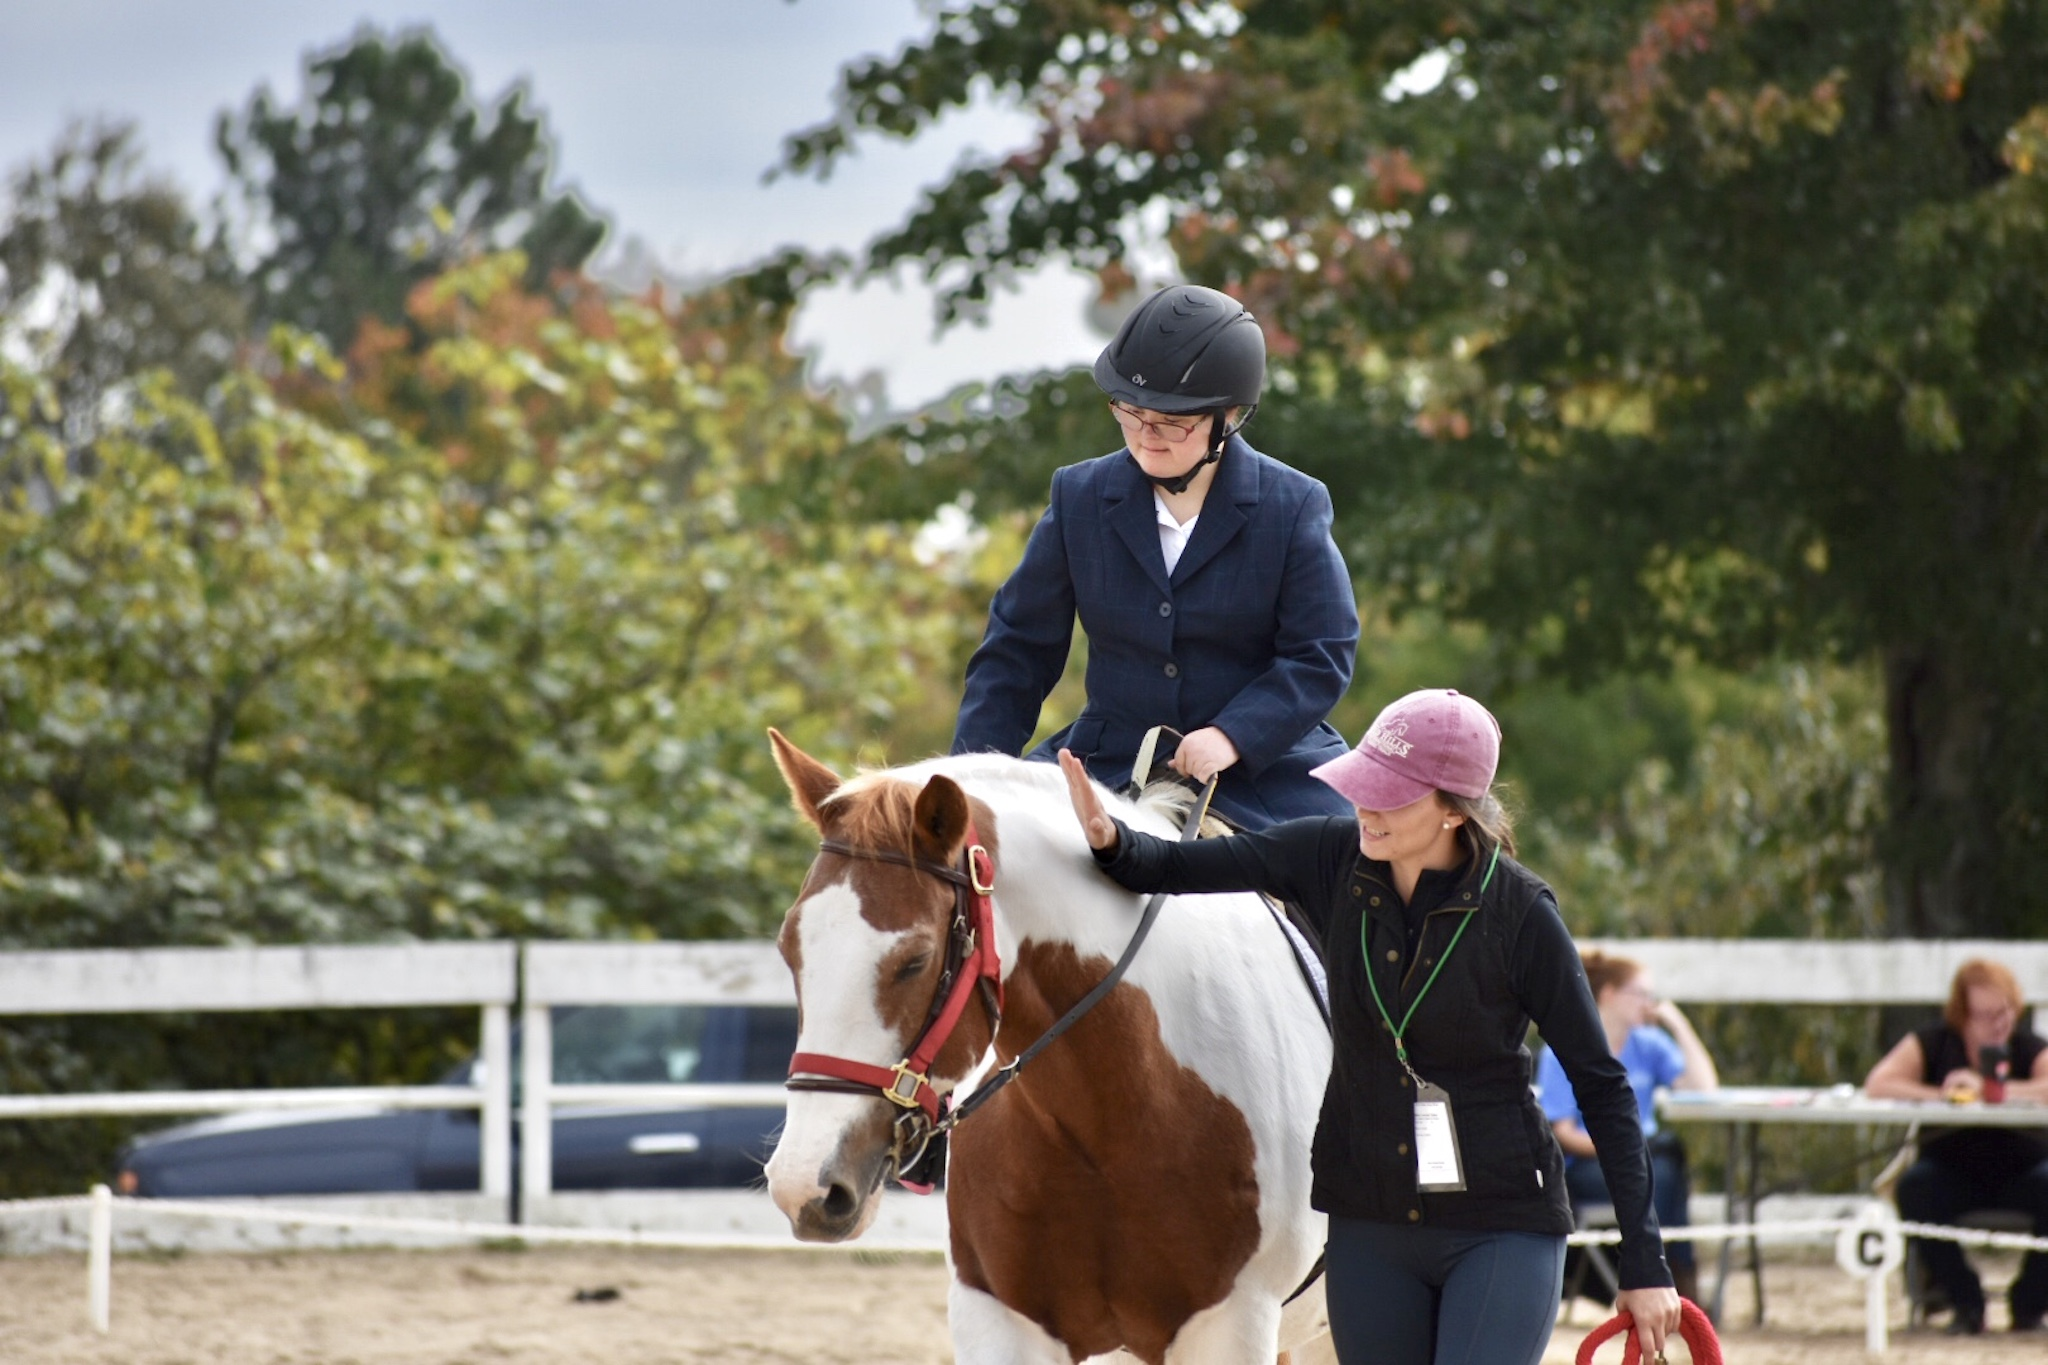 """what people are saying - """"Our daughter has been riding there for well over a decade and it has always been her favorite part of the week. She has learned so much and become such a confident rider. But my favorite image is what often happens at the end of her lesson on her horse, Eclipse. When her time is up, and she is told it is time to go back to the barn, she turns Eclipse in the opposite direction and begins kicking and laughing as they ride off. She just loves it so much, she truly doesn't want the time to end. I smile every time I think about it, and am grateful (again) for the joy she has at HHH."""